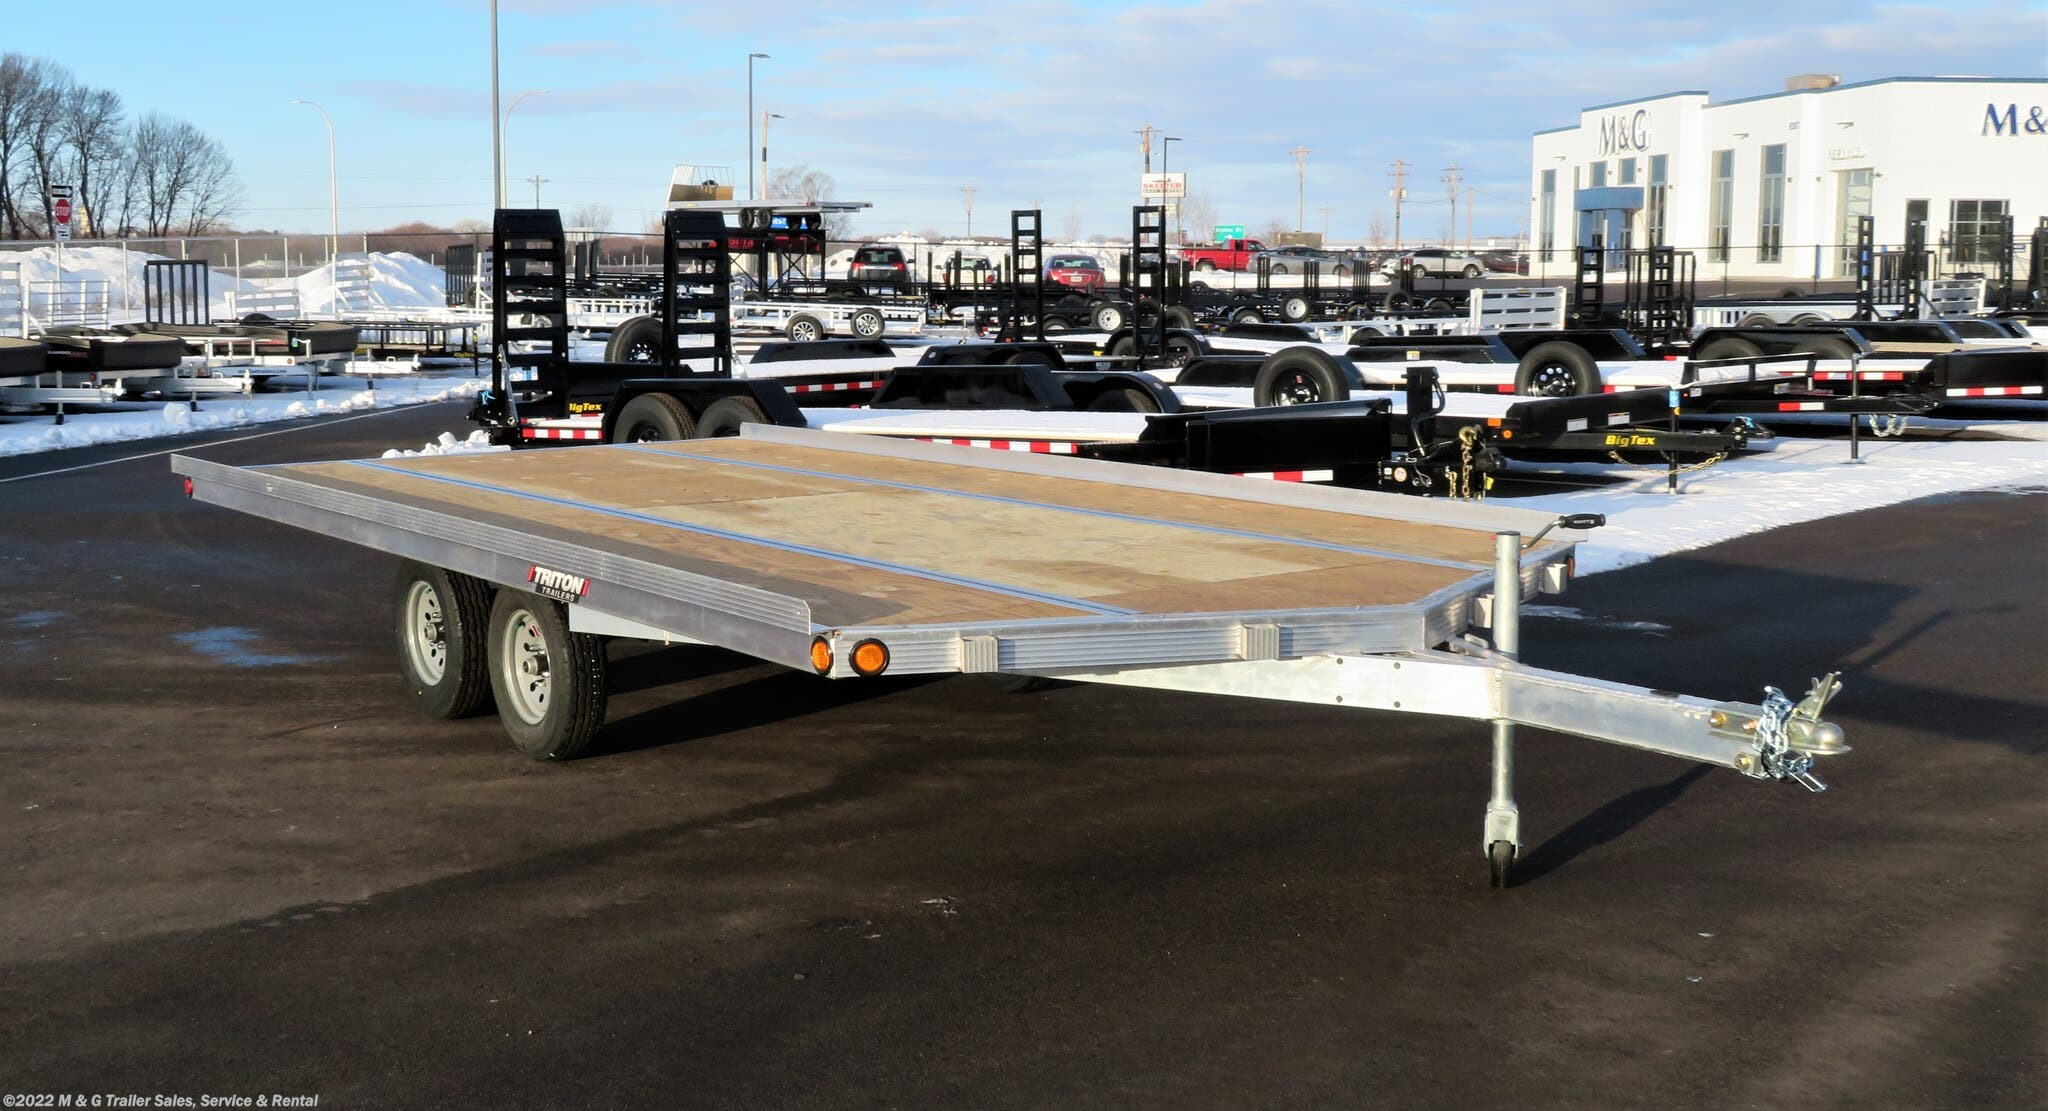 2021 Triton Trailers Elite 16-101 3 Place Snowmobile Trailer - Drive On - Stock #105704